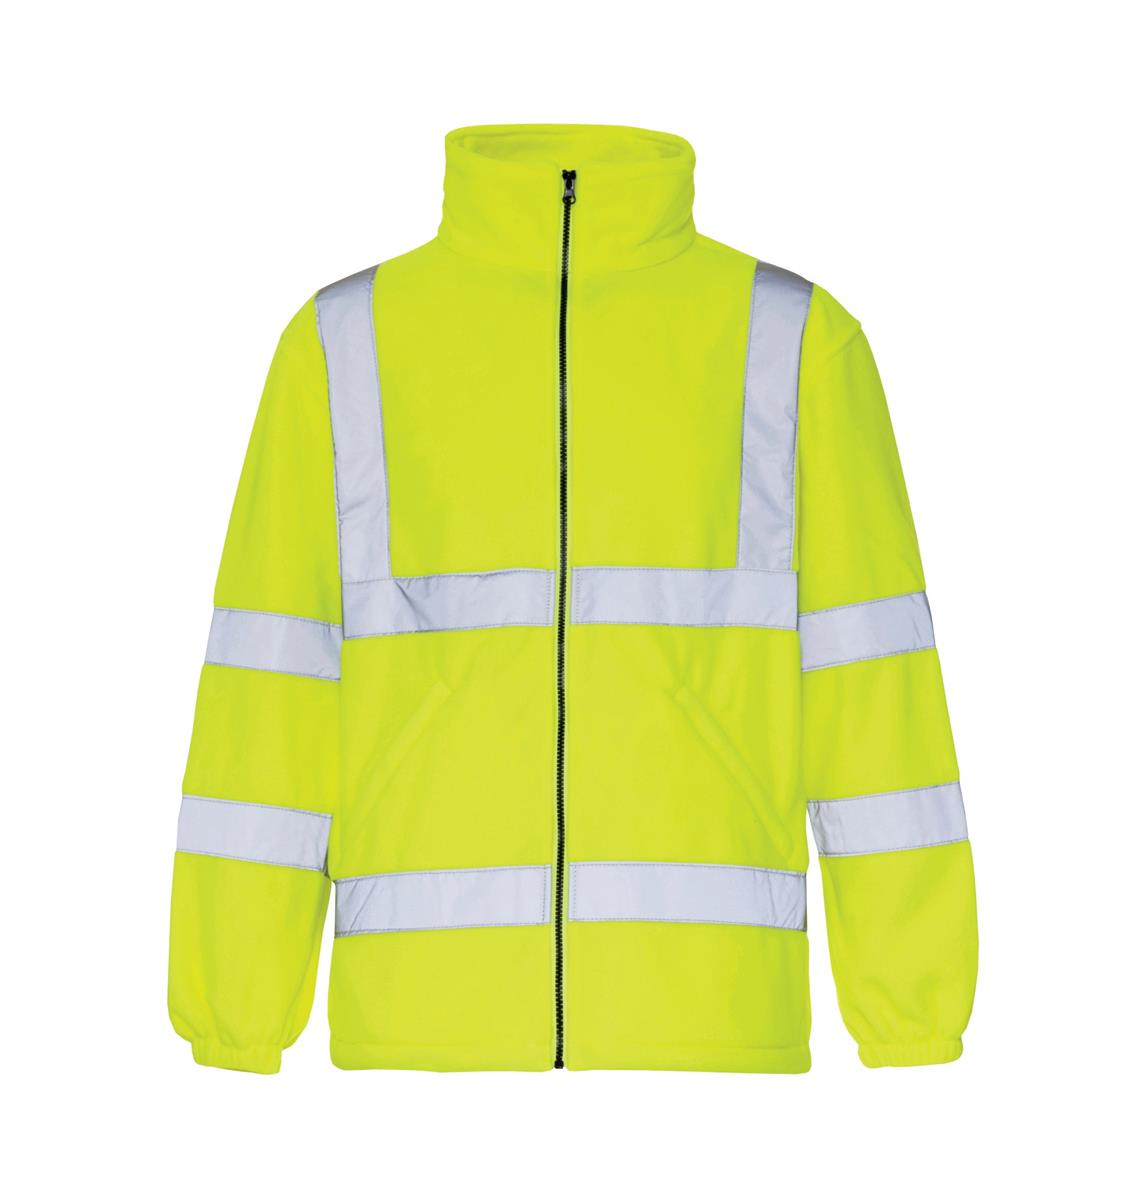 ST High Vis Micro Fleece Jacket Poly with Zip Fastening XXLarge Yellow Ref 38045 *Approx 3 Day Leadtime*